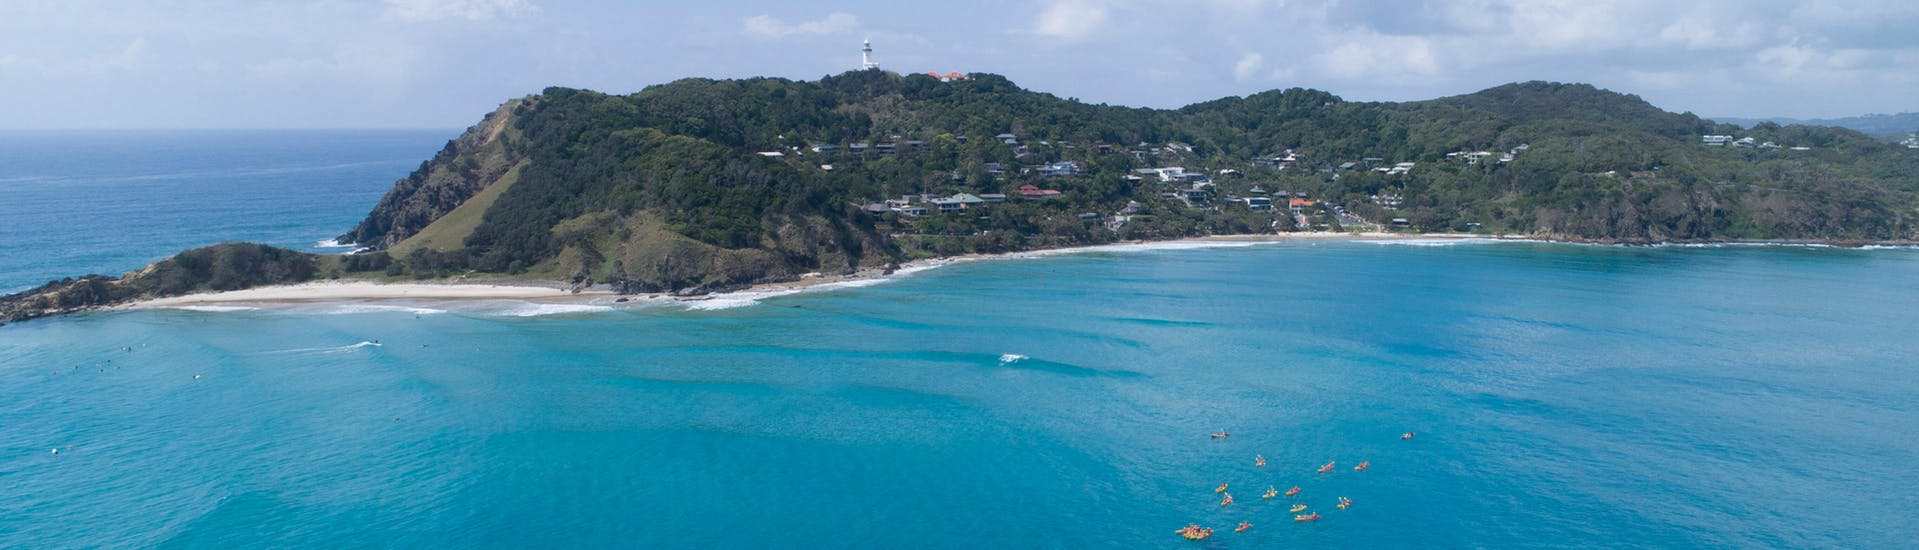 kayaking-with-dolphins-in-byron-bay-in-winter-hero